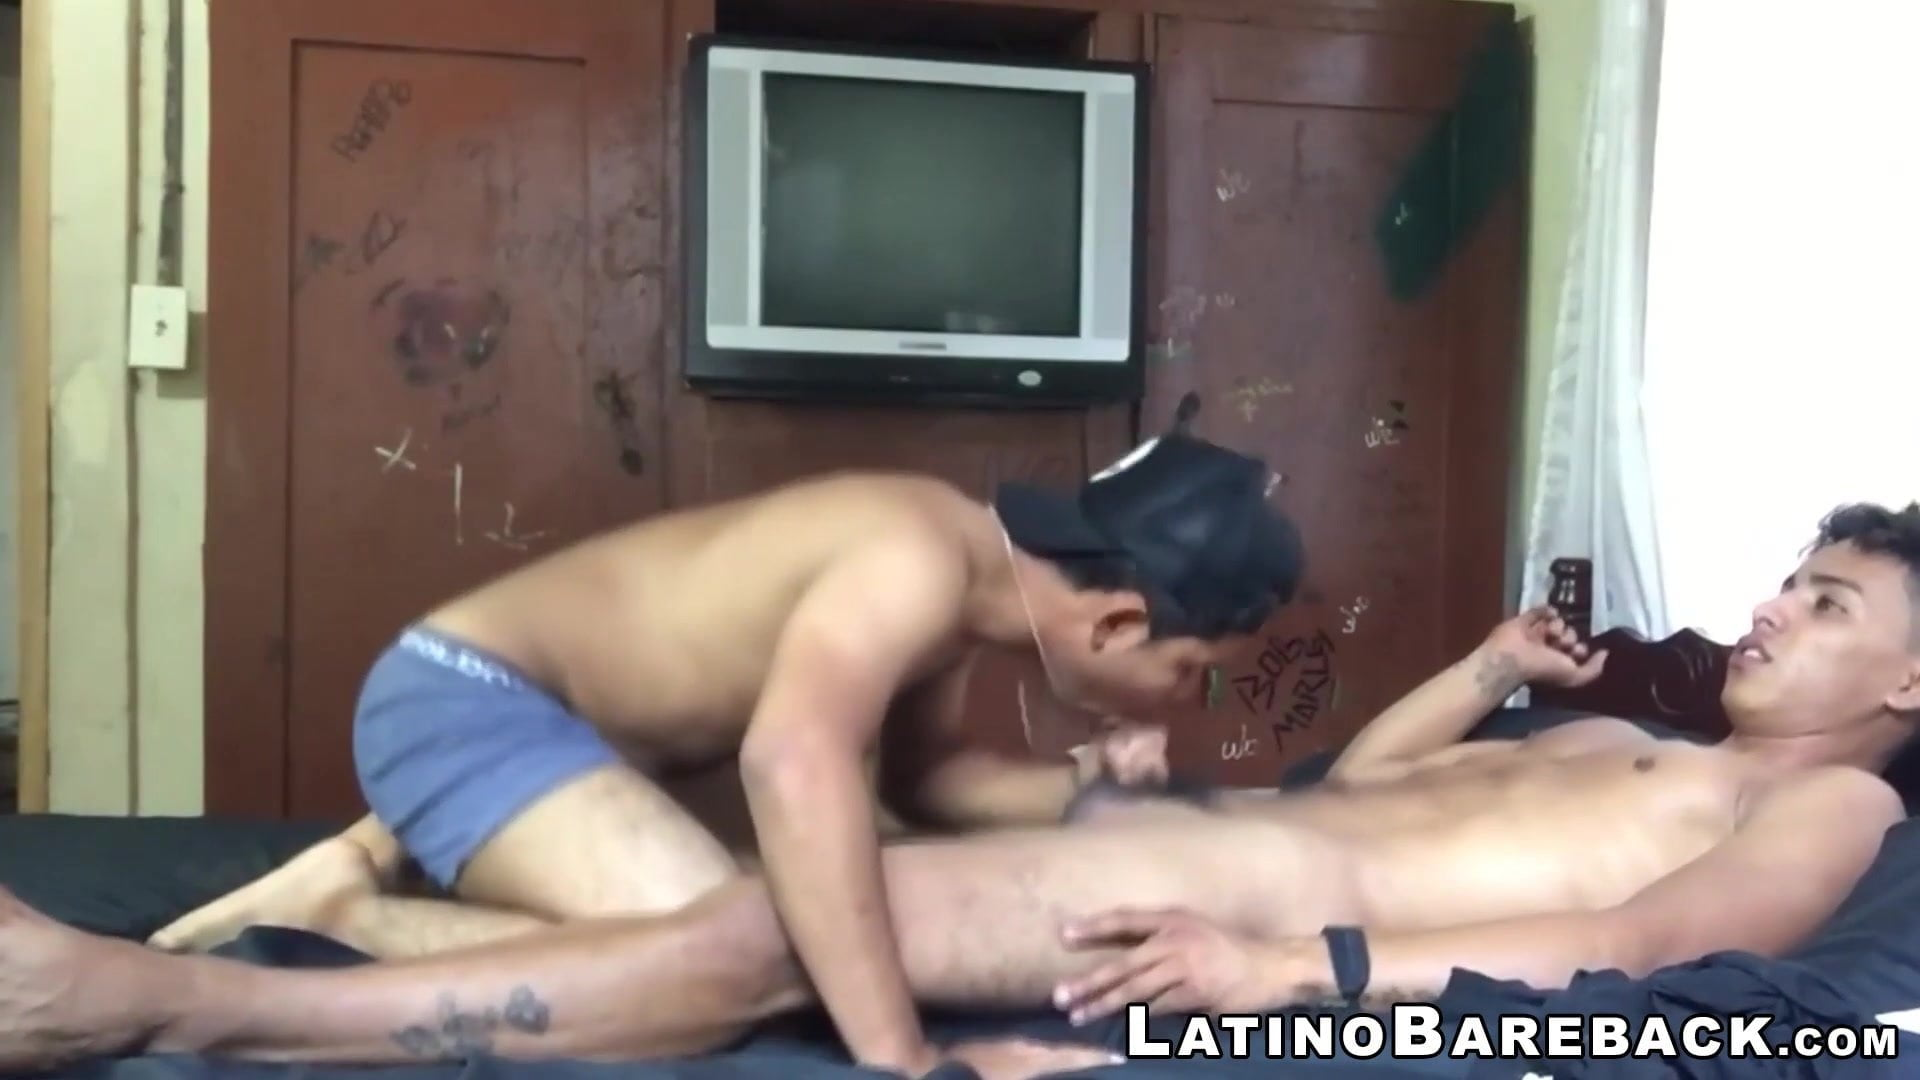 Younger latino barebacked doggystyle earlier than jerking off to cum